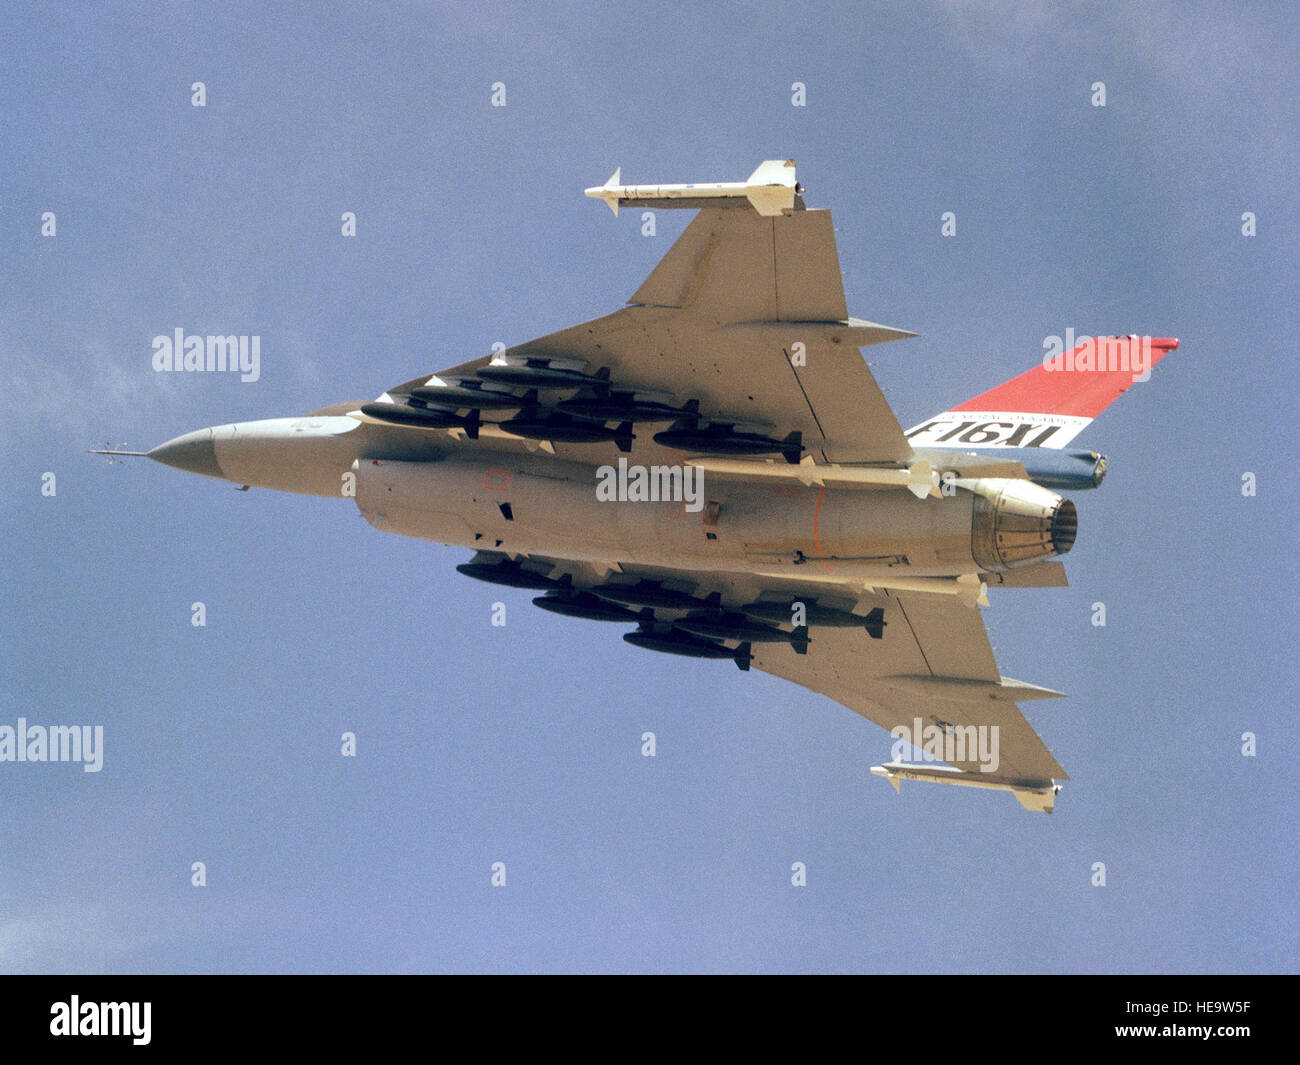 An air to air left underside view of an F-16XL aircraft.  The aircraft is armed with two wing tip mounted AIM-9 - Stock Image